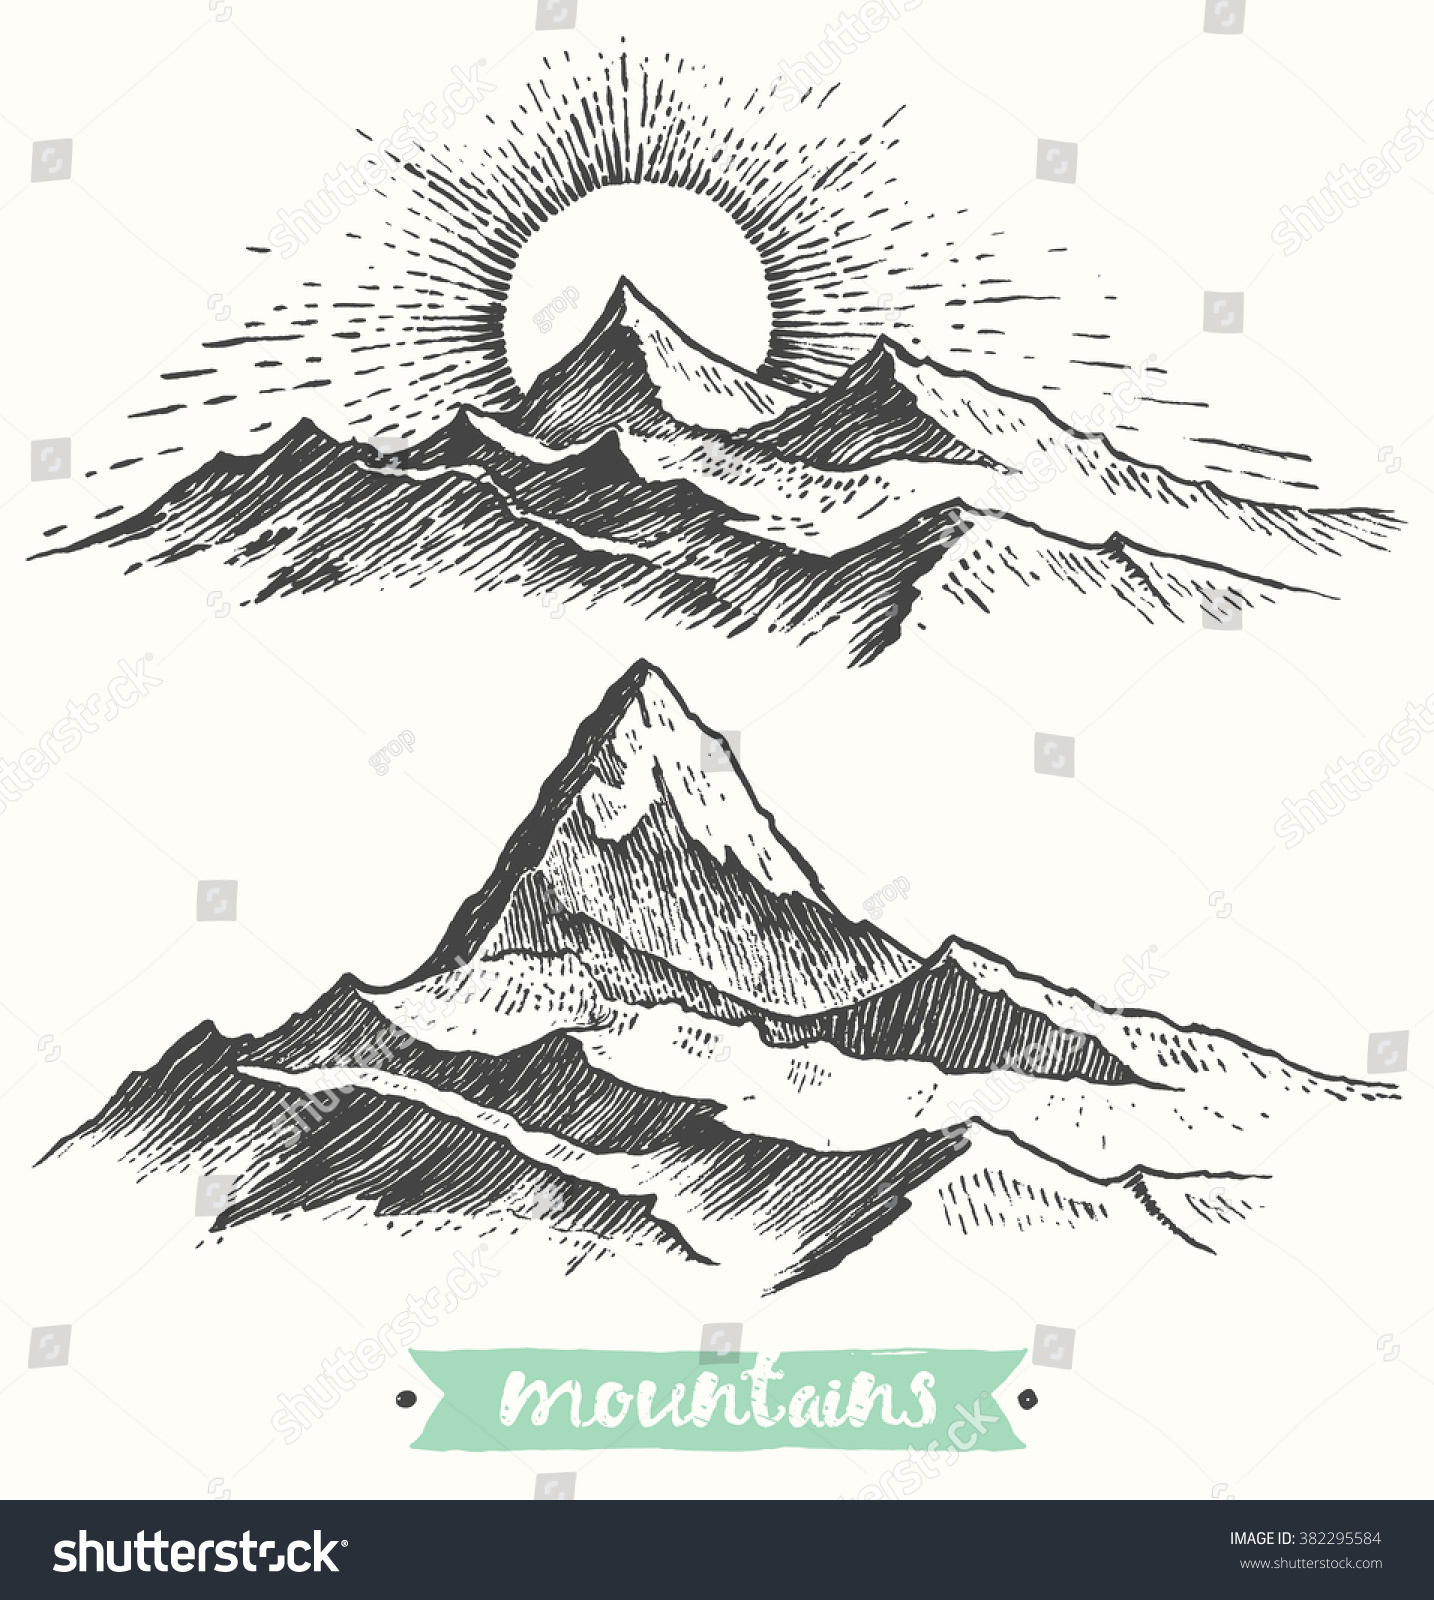 Line Drawing Sunrise : Sketch mountains engraving style hand drawn stock vector